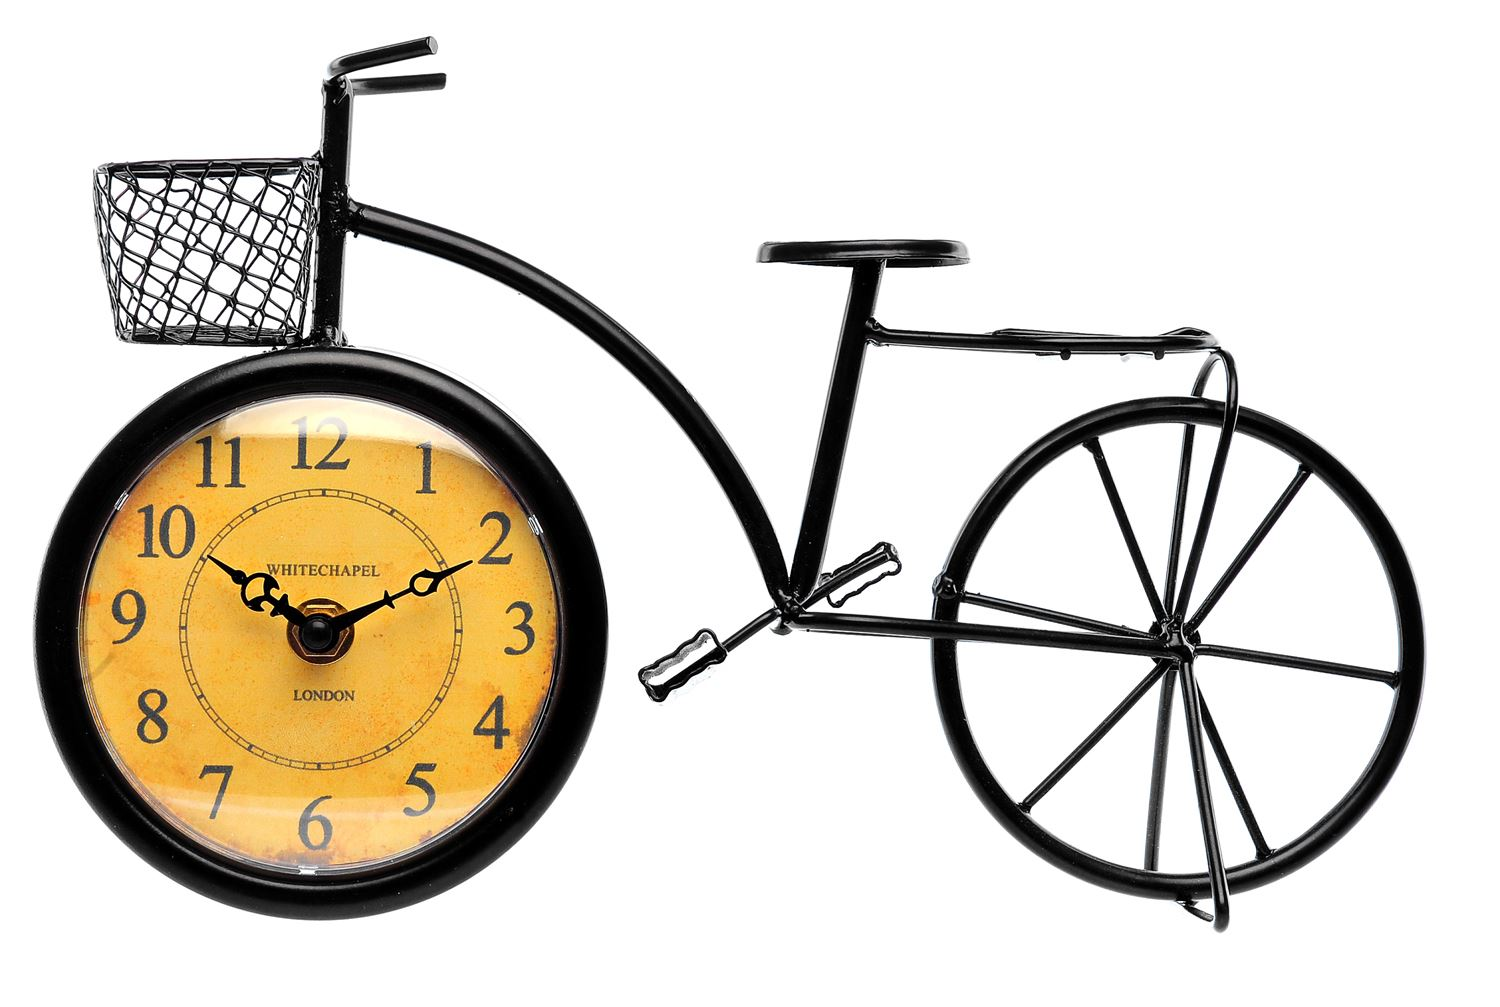 stylish bicycle clock with an antiqued effect clock face a lovely decorative item that will enhance the look of a desk or shelf